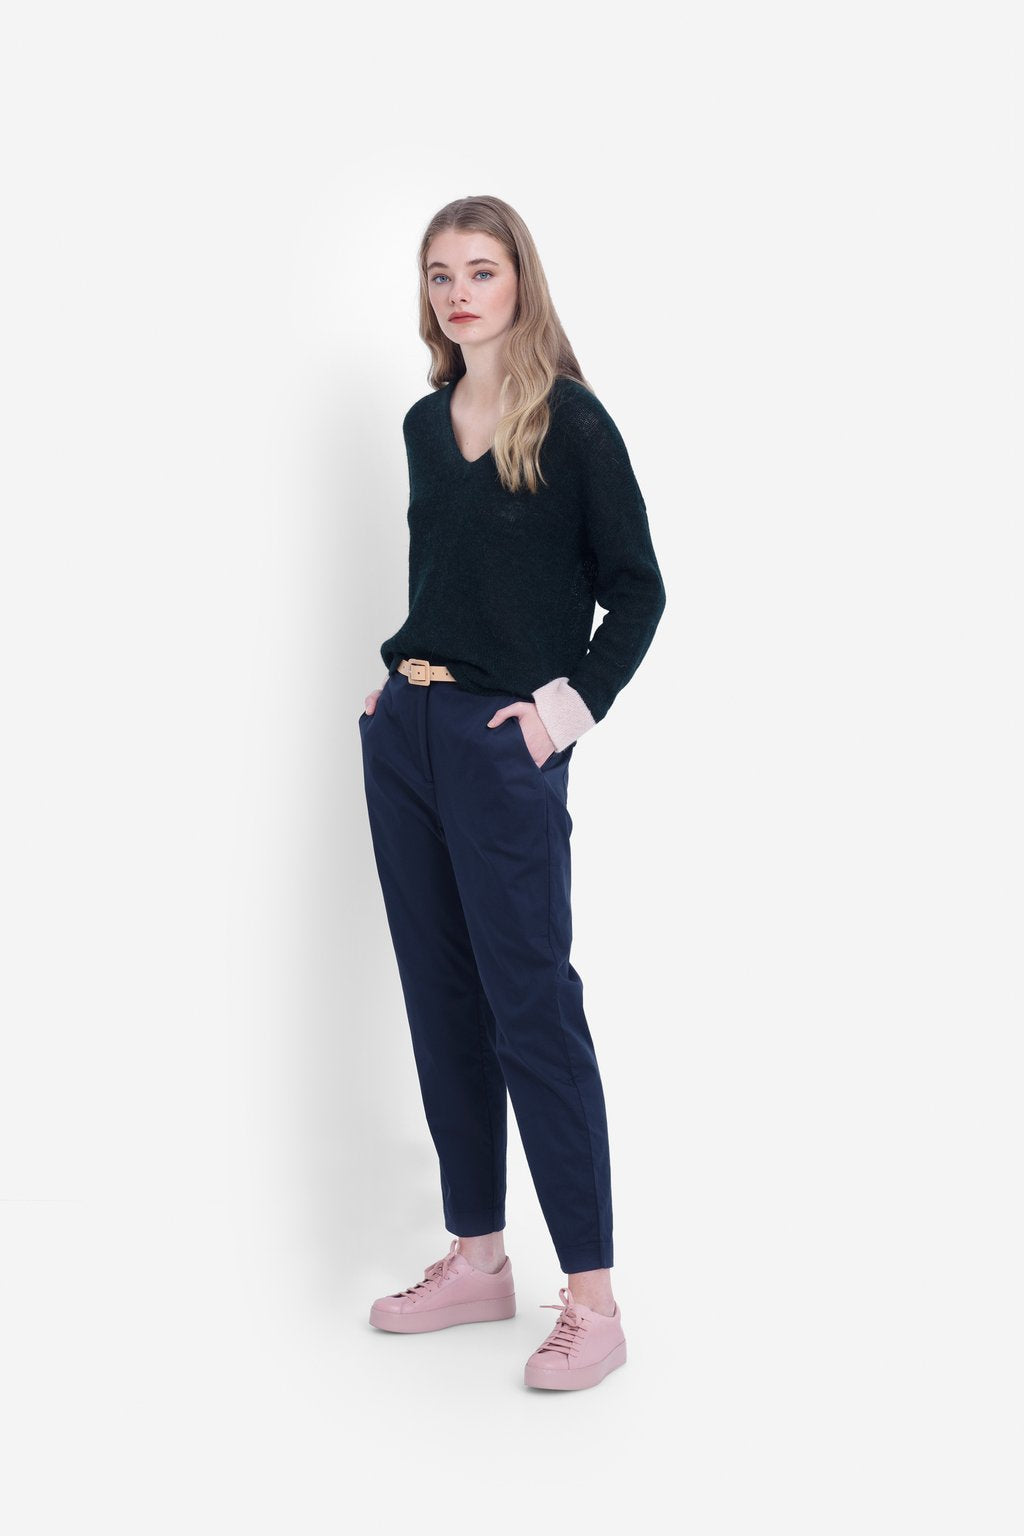 ELK The Label - Aira Pants online at PAYA boutique